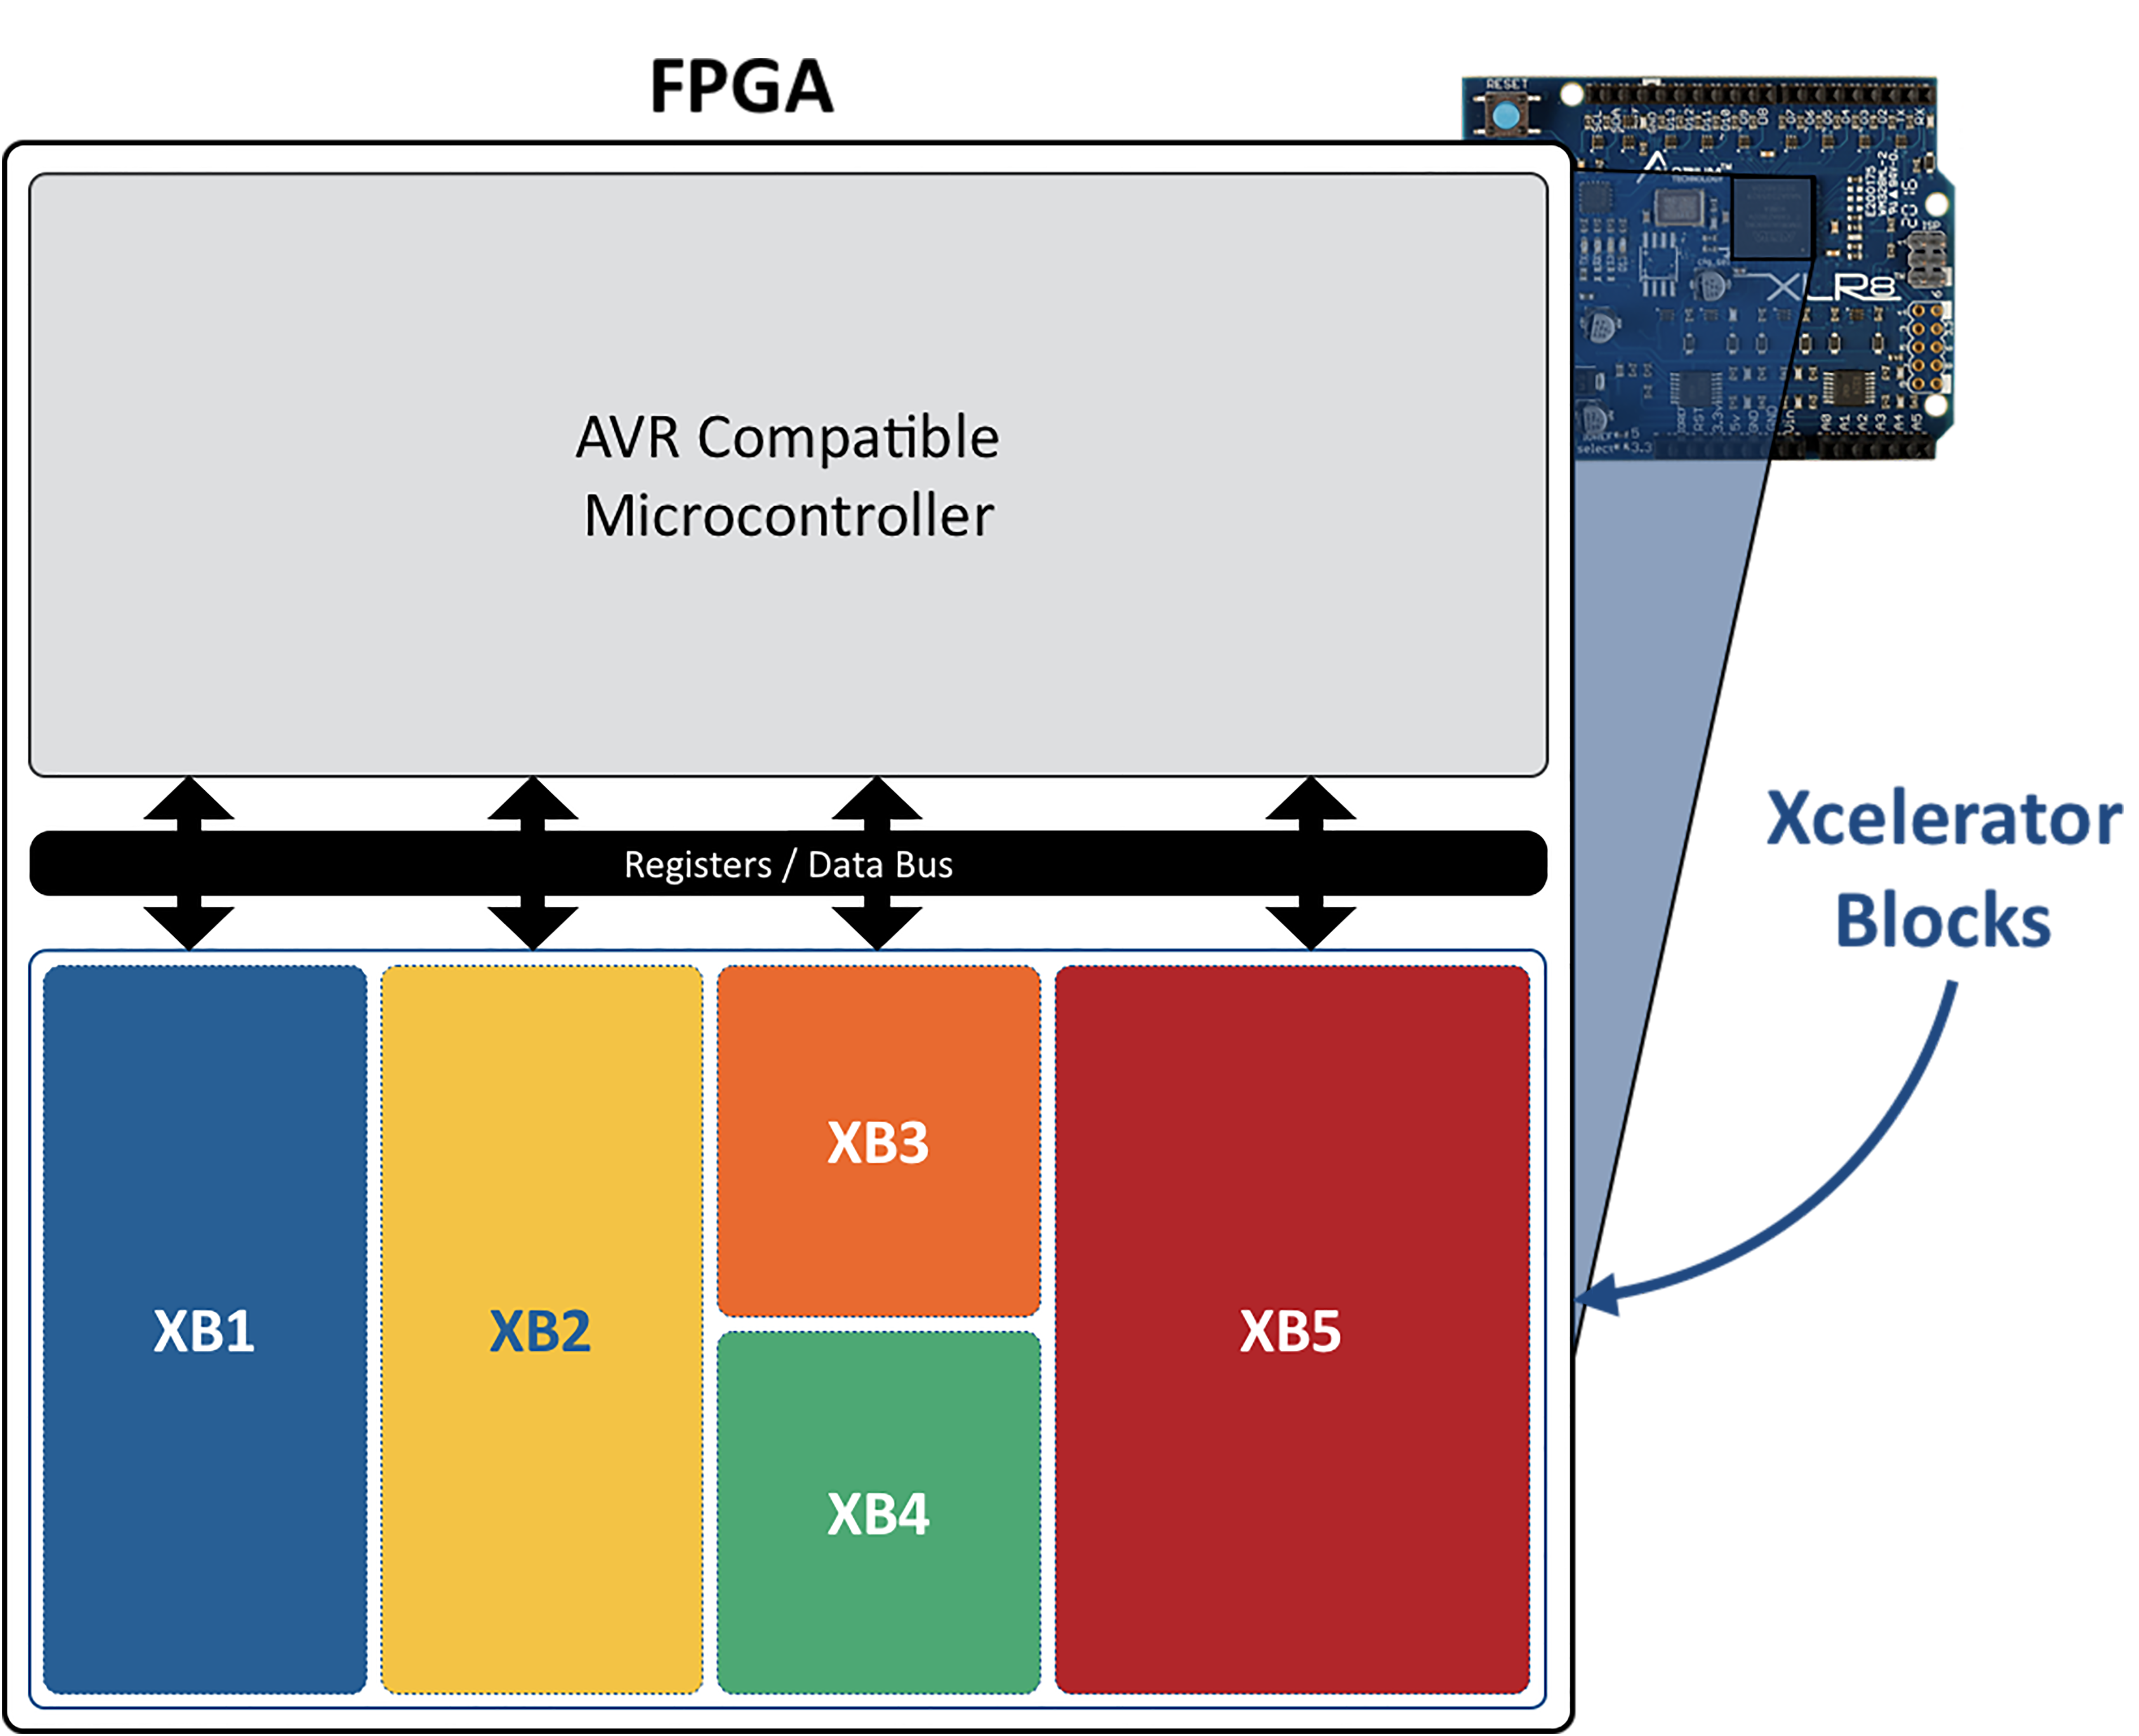 Xcelerator Blocks communicate with the AVR microcontroller